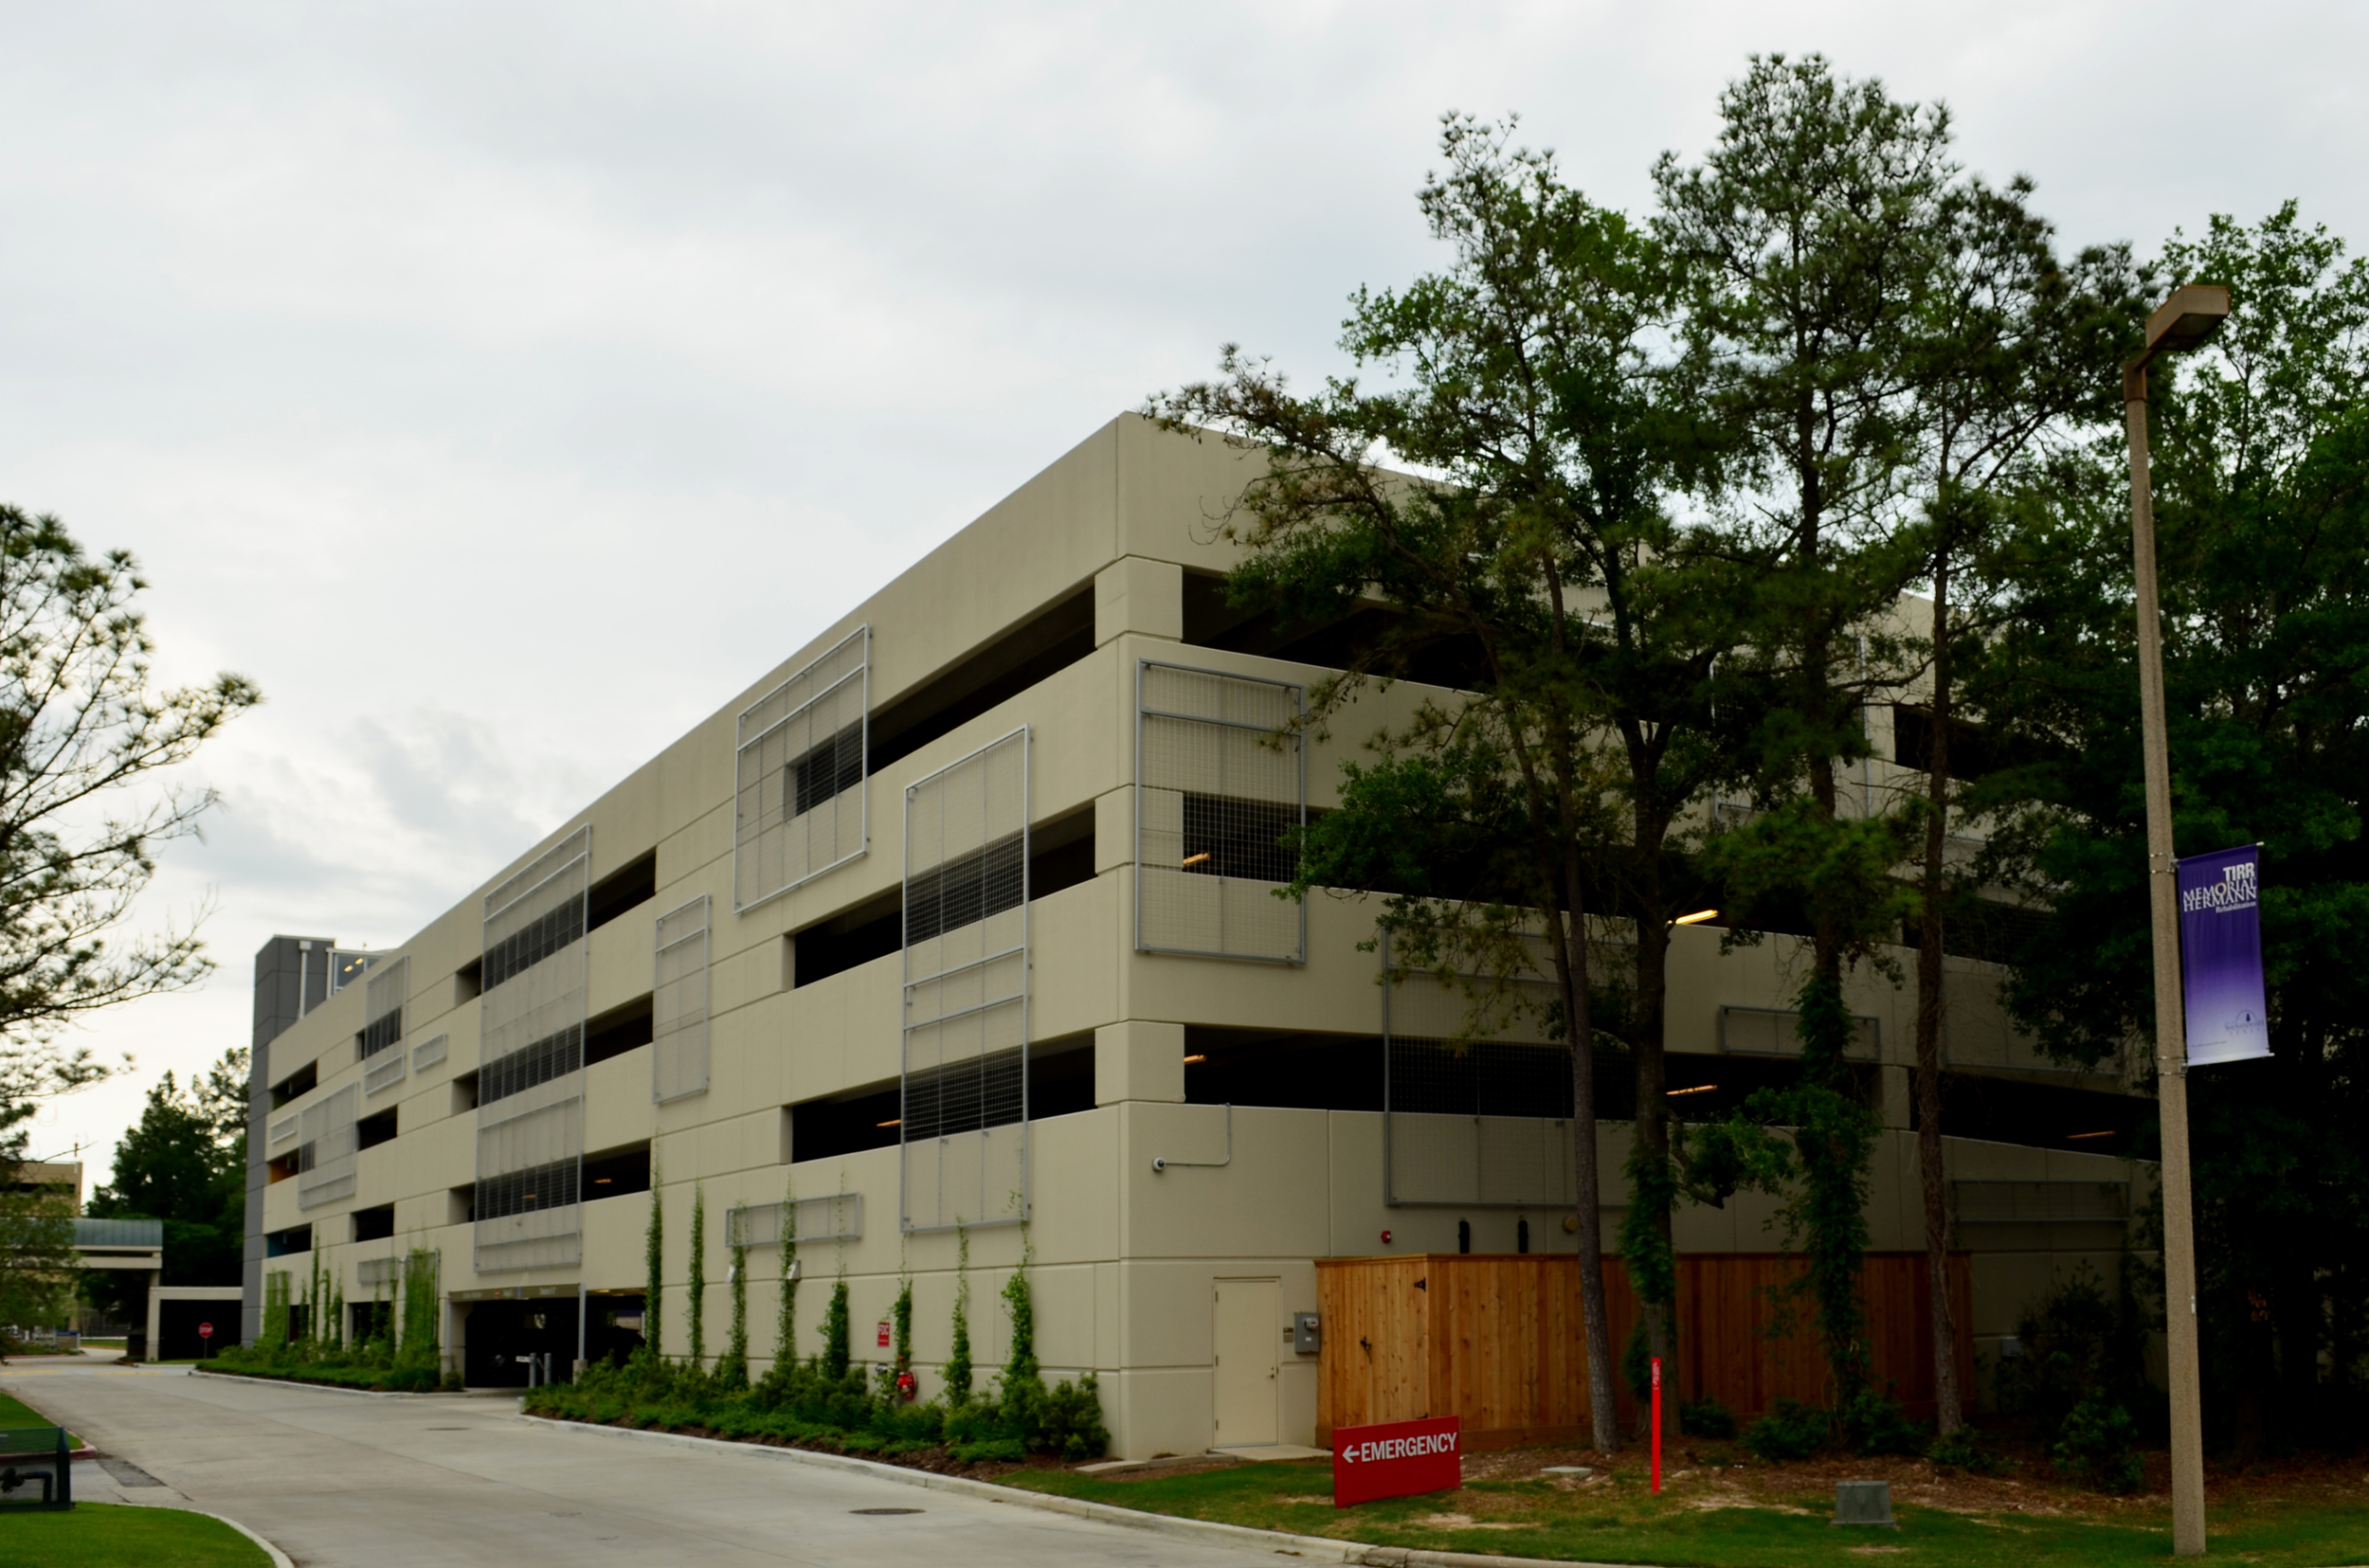 Memorial Hermann Garage. Project designed and managed by Marco Cano working at Haynes Whaley Associates